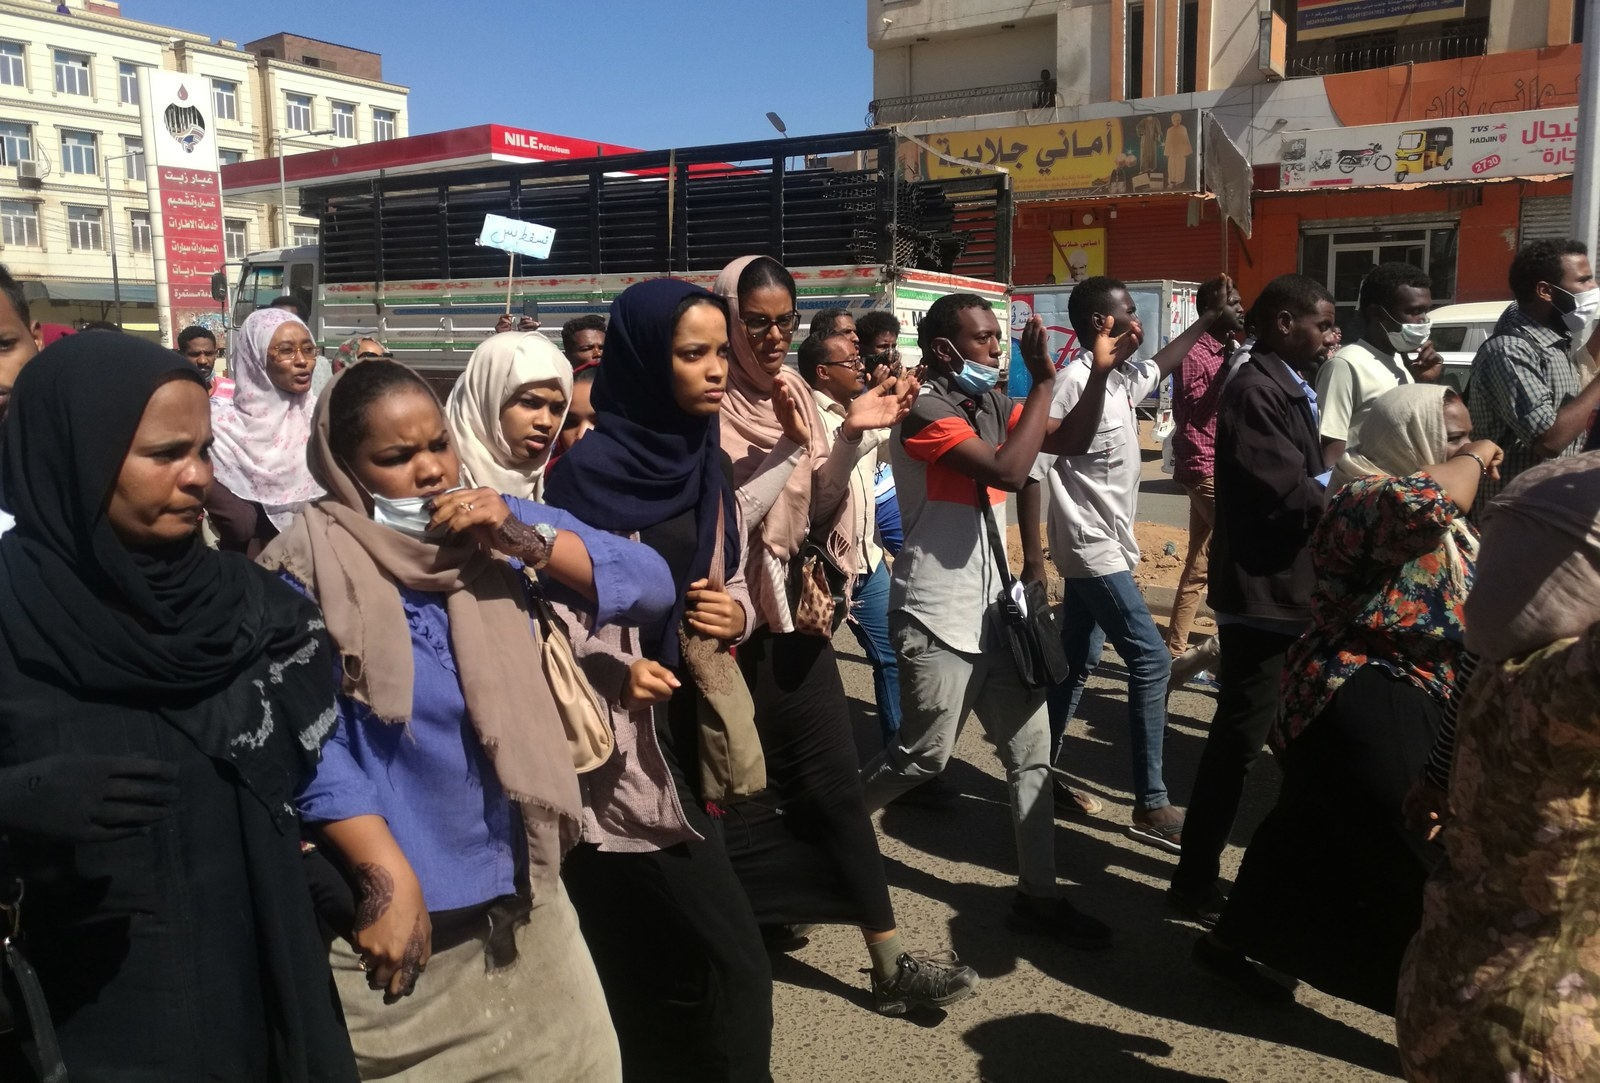 Demonstrators gather in Omdurman on Jan. 20, where police fired tear gas at protesters ahead of a planned march.